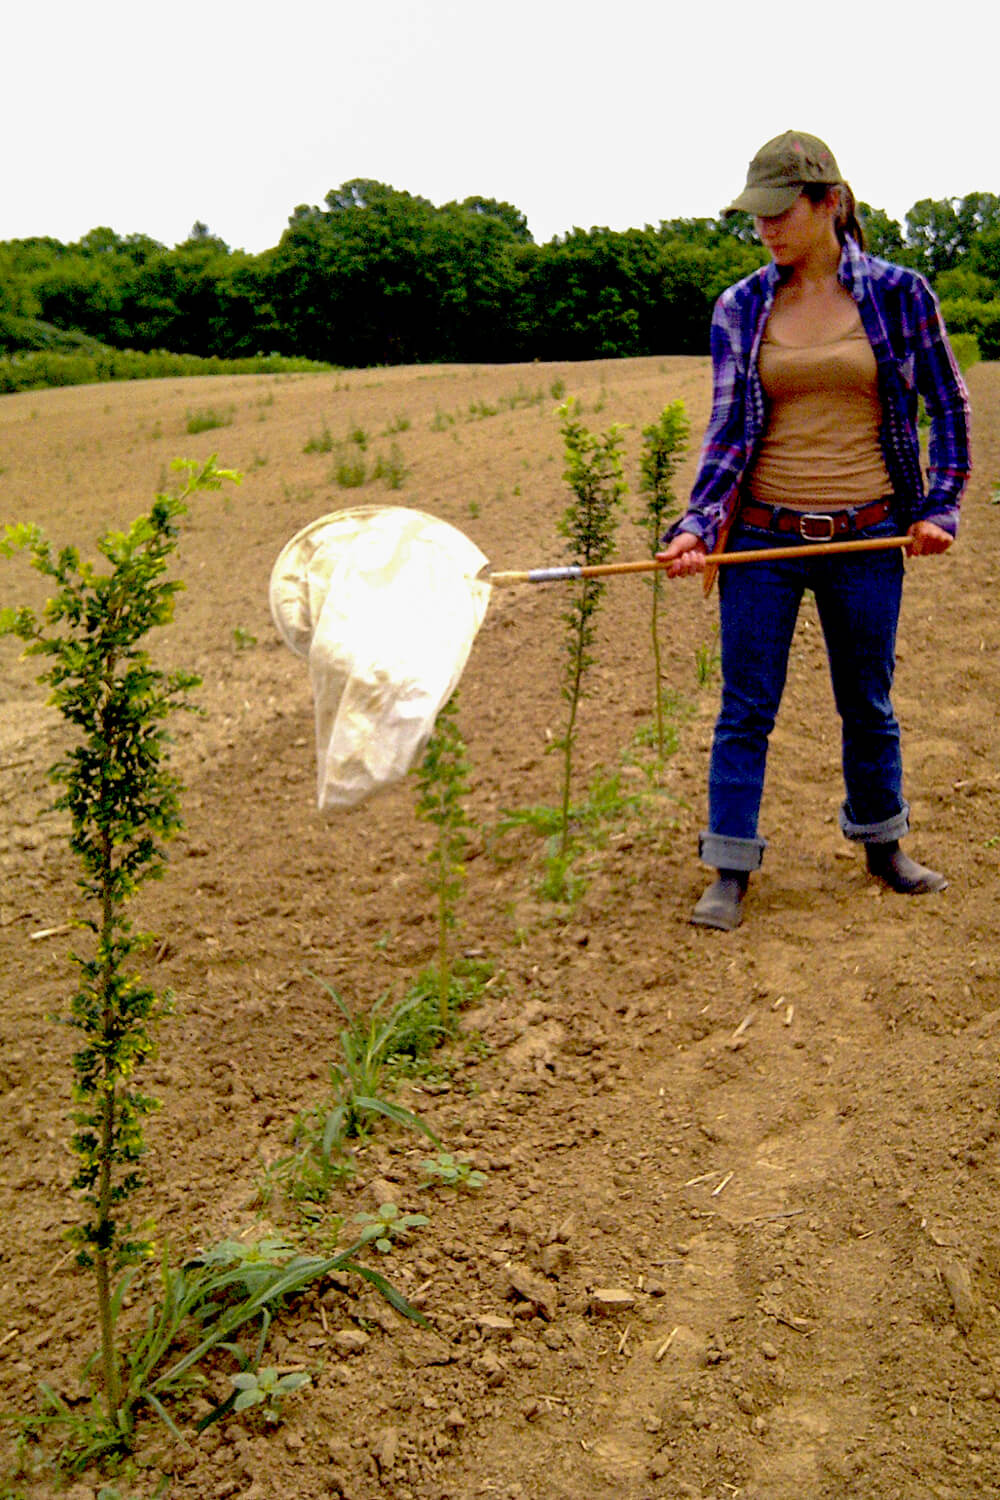 woman holding a butterfly net in a nursery field